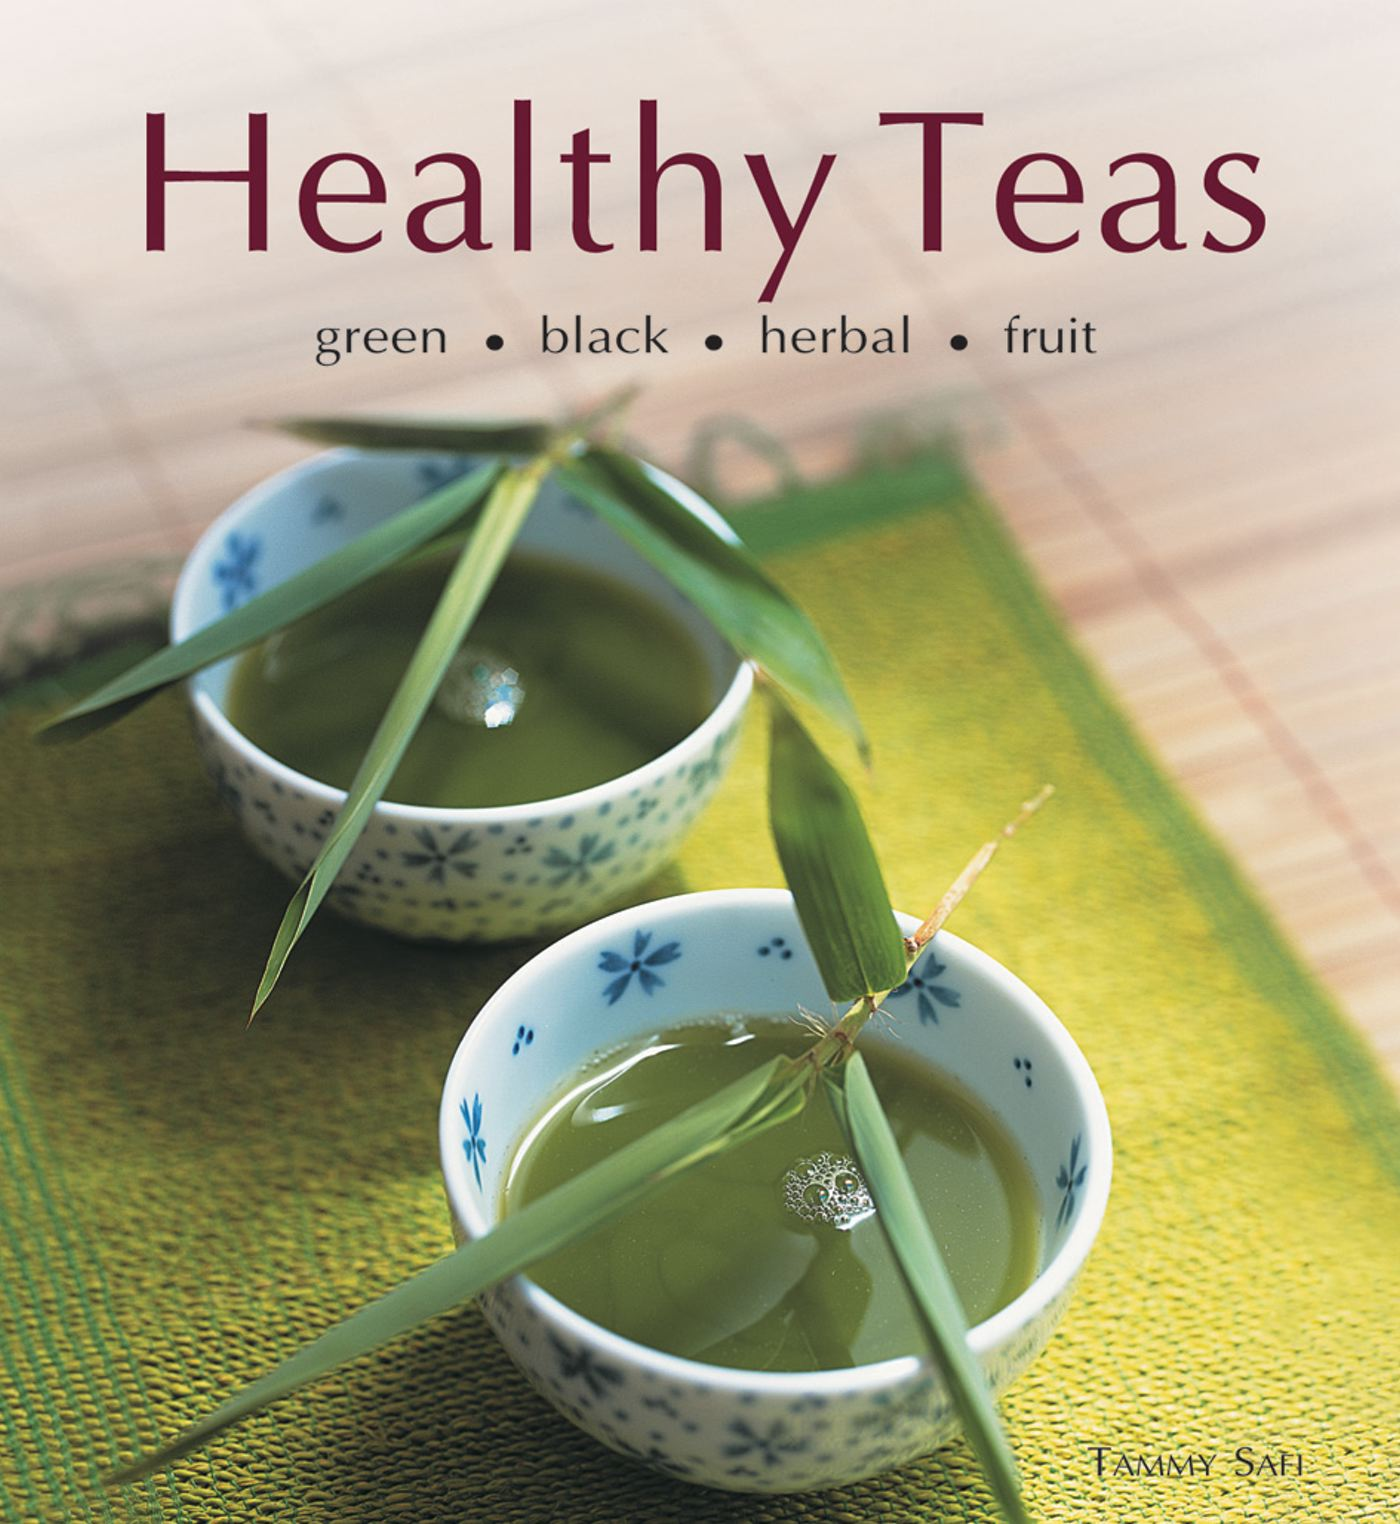 Healthy Teas : Green, Black, Herbal, Fruit